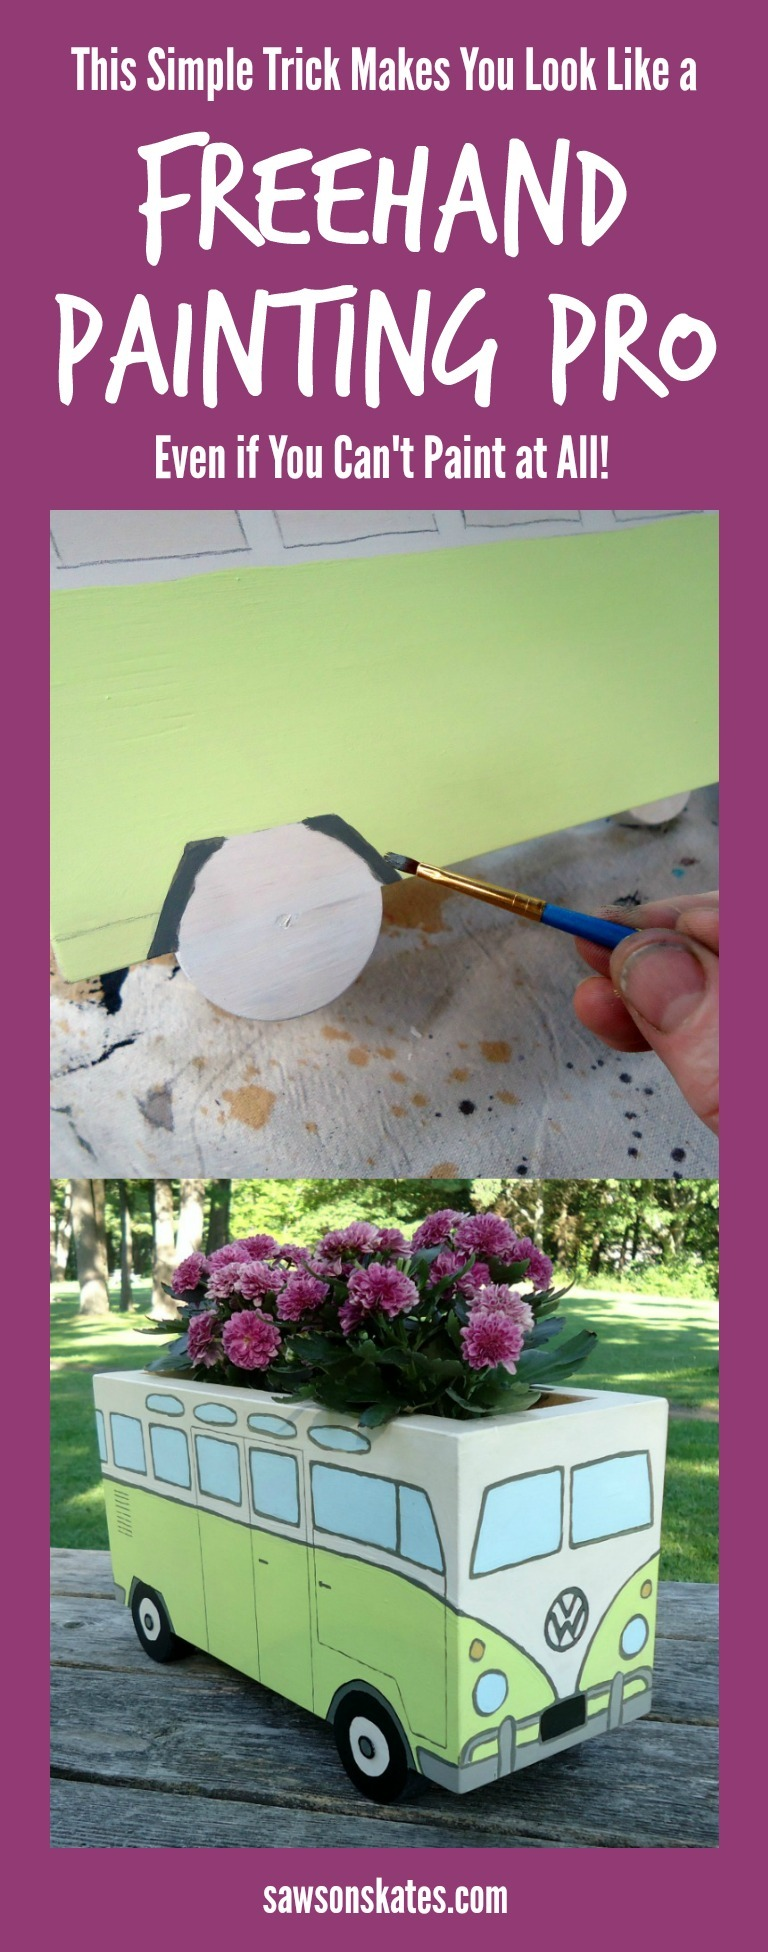 Think you can't paint freehand? Think again! I'll show you a simple trick to make you look like a freehand painting pro! All you'll need is a wood project to paint on, craft paints, paint brushes and your design ideas... a line drawing, picture, a few words or a phrase.